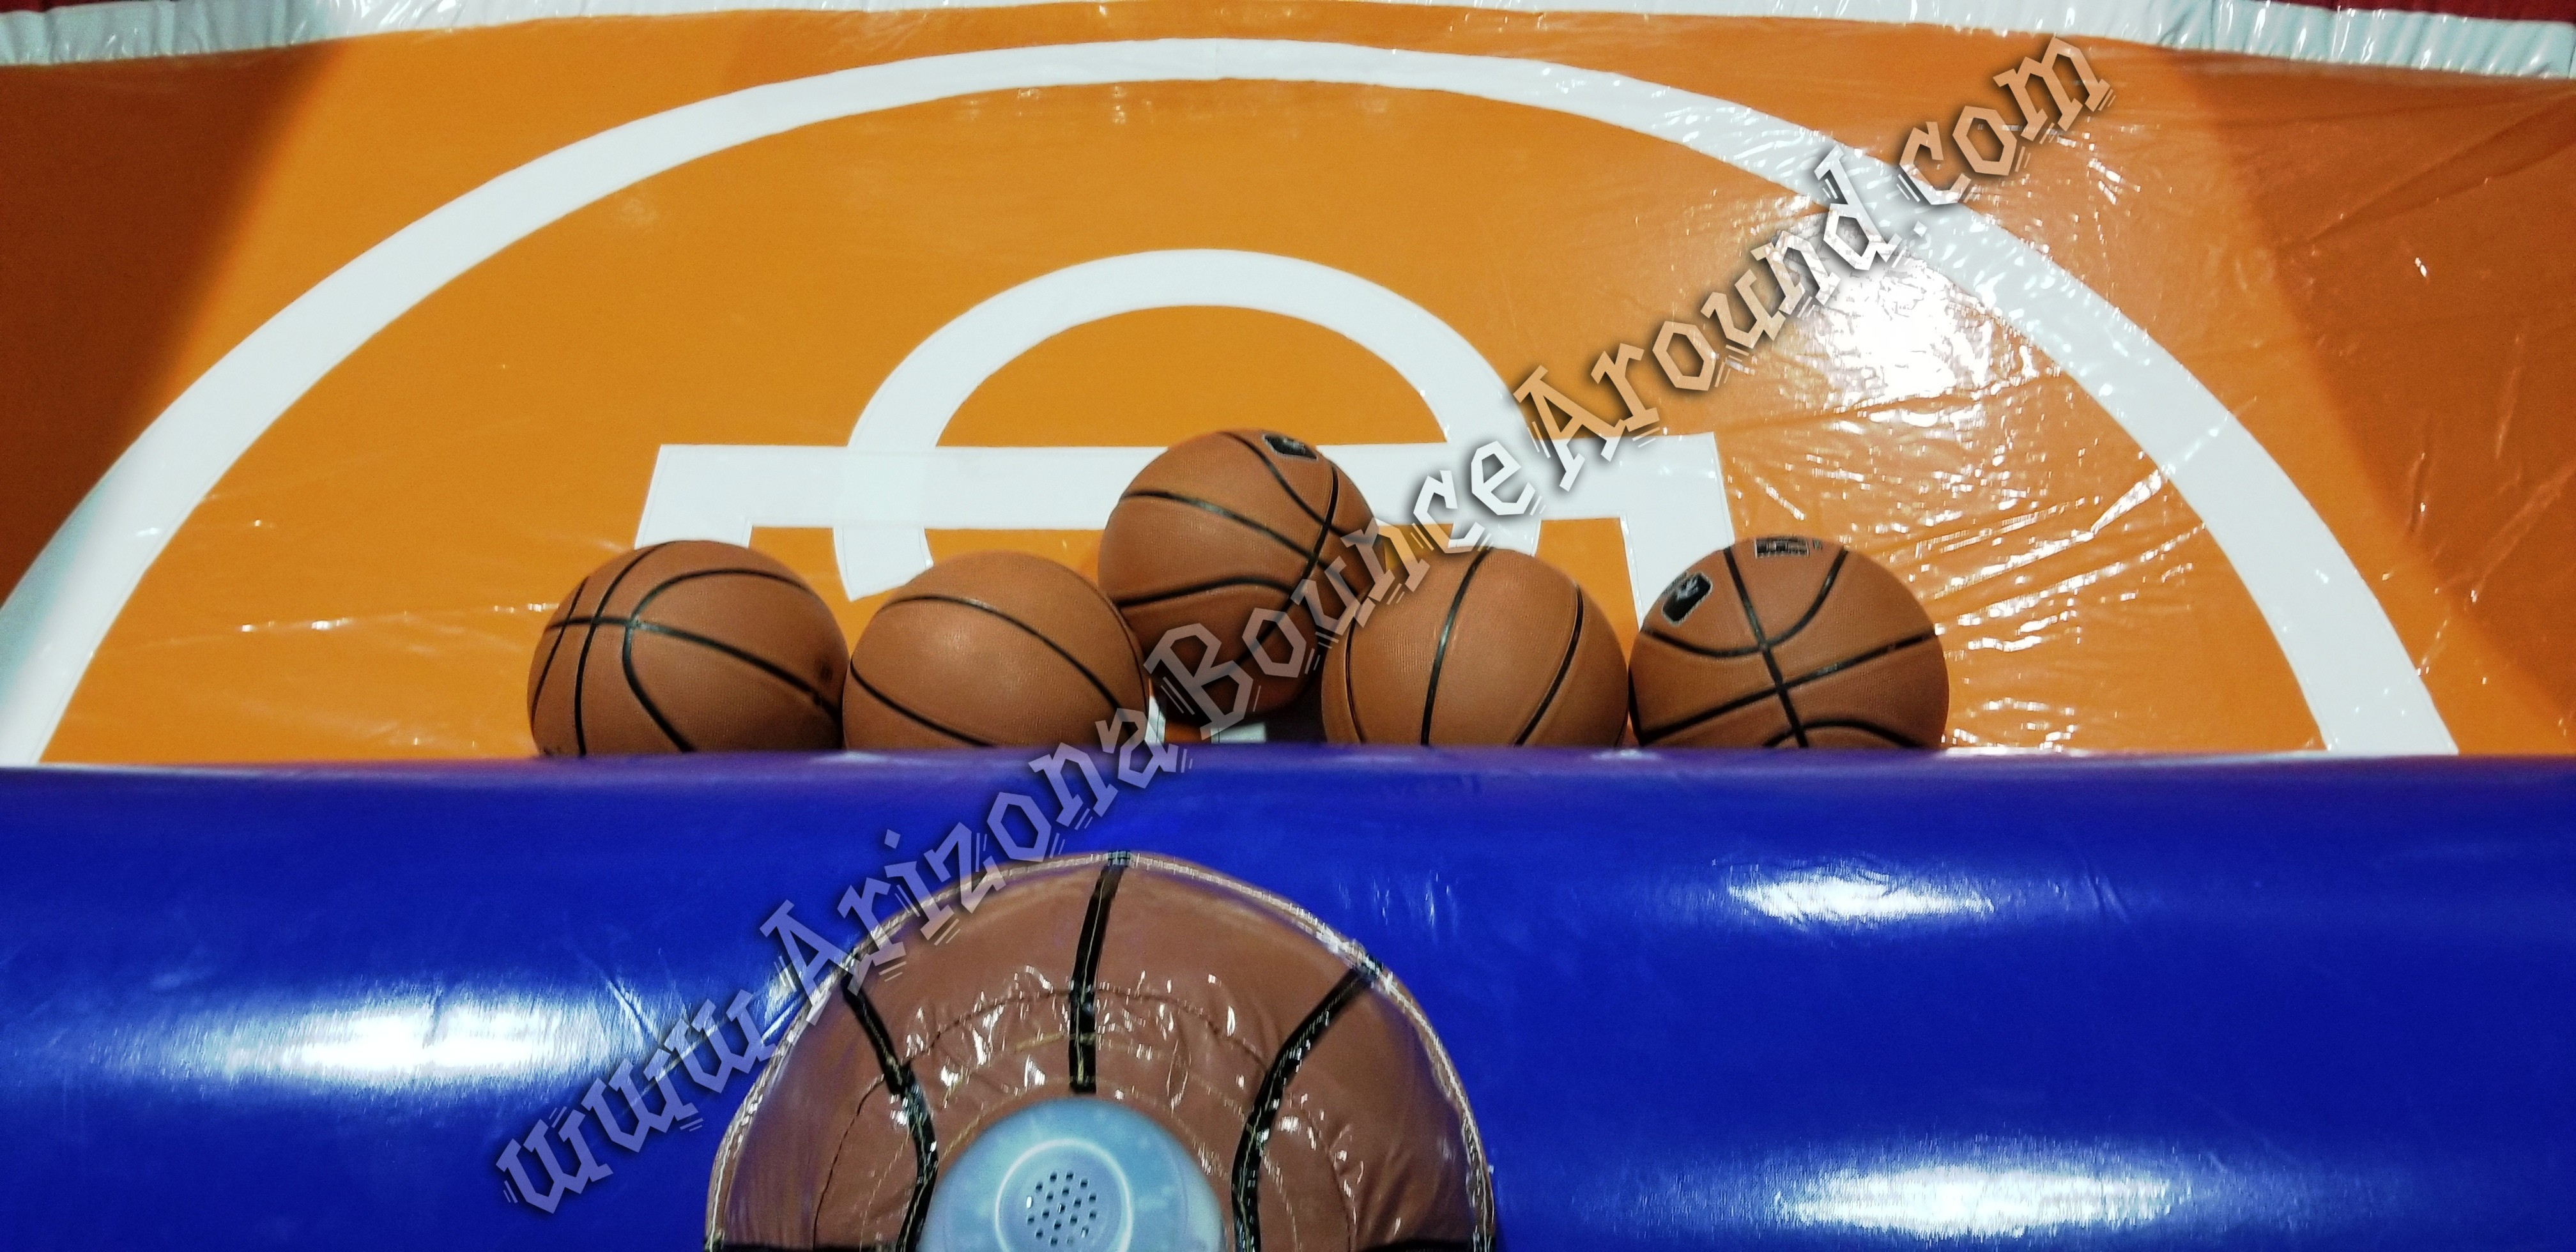 Inflatable basketball games for rent in Phoenix Arizona